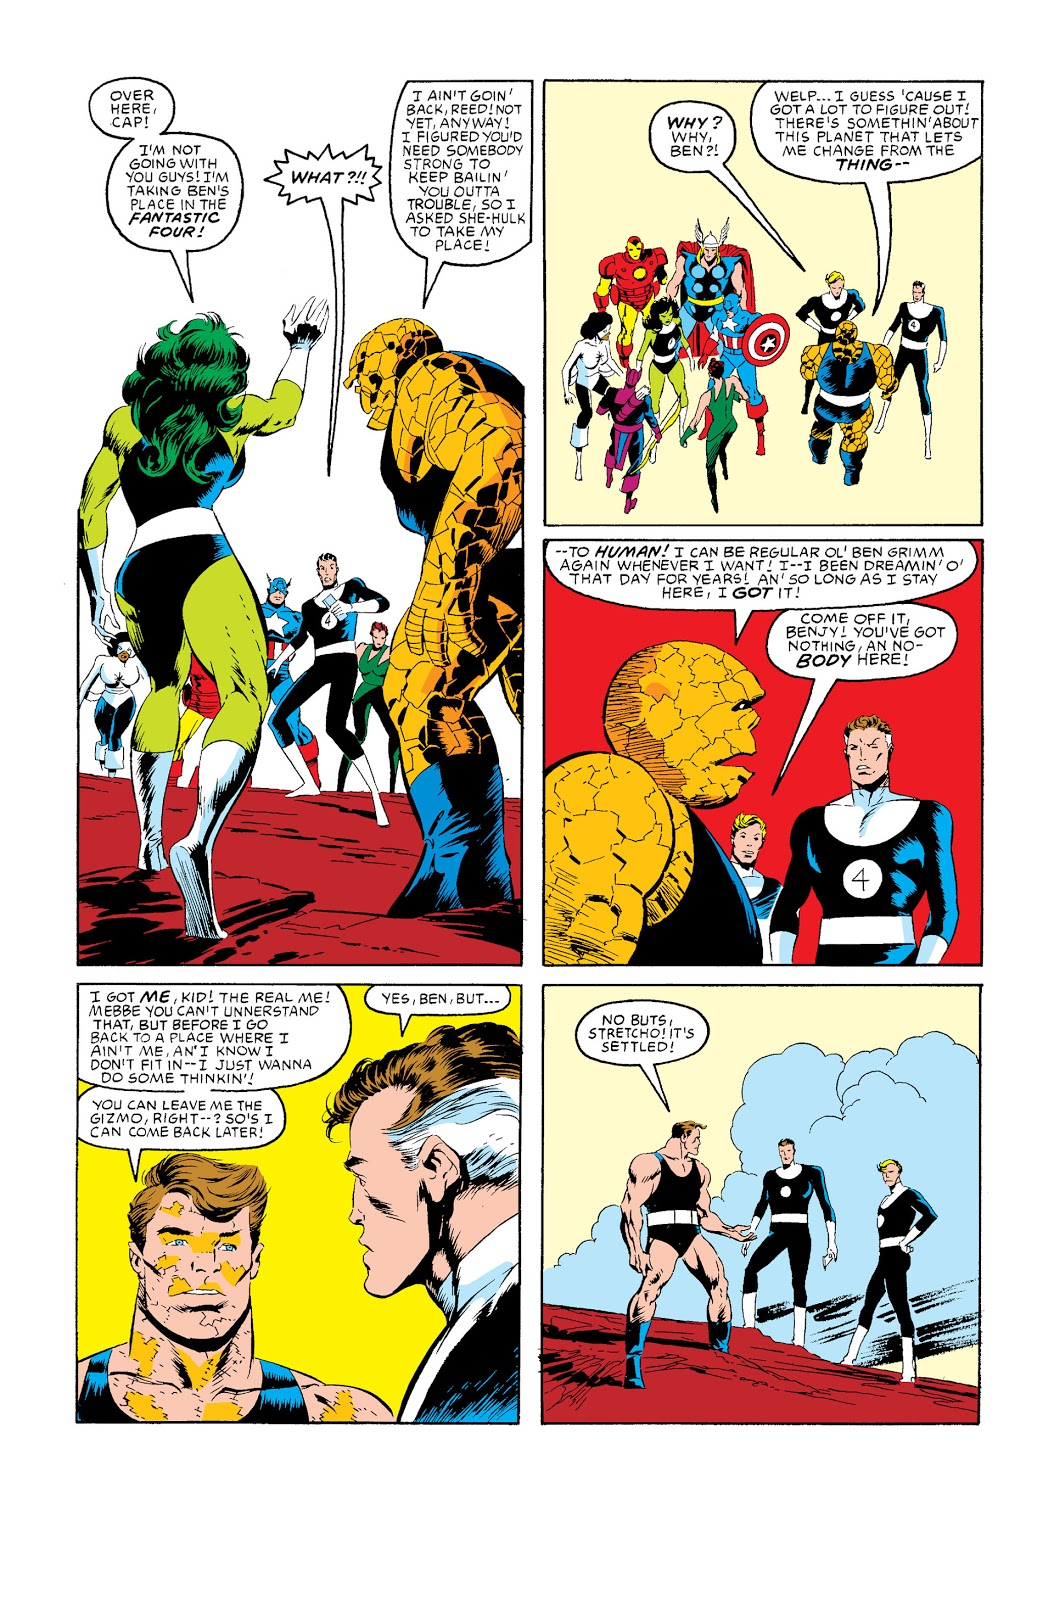 In 'Marvel Super Heroes Secret War' (1985) #12, She-Hulk accompanied by the Thing, joins the Fantastic Four.